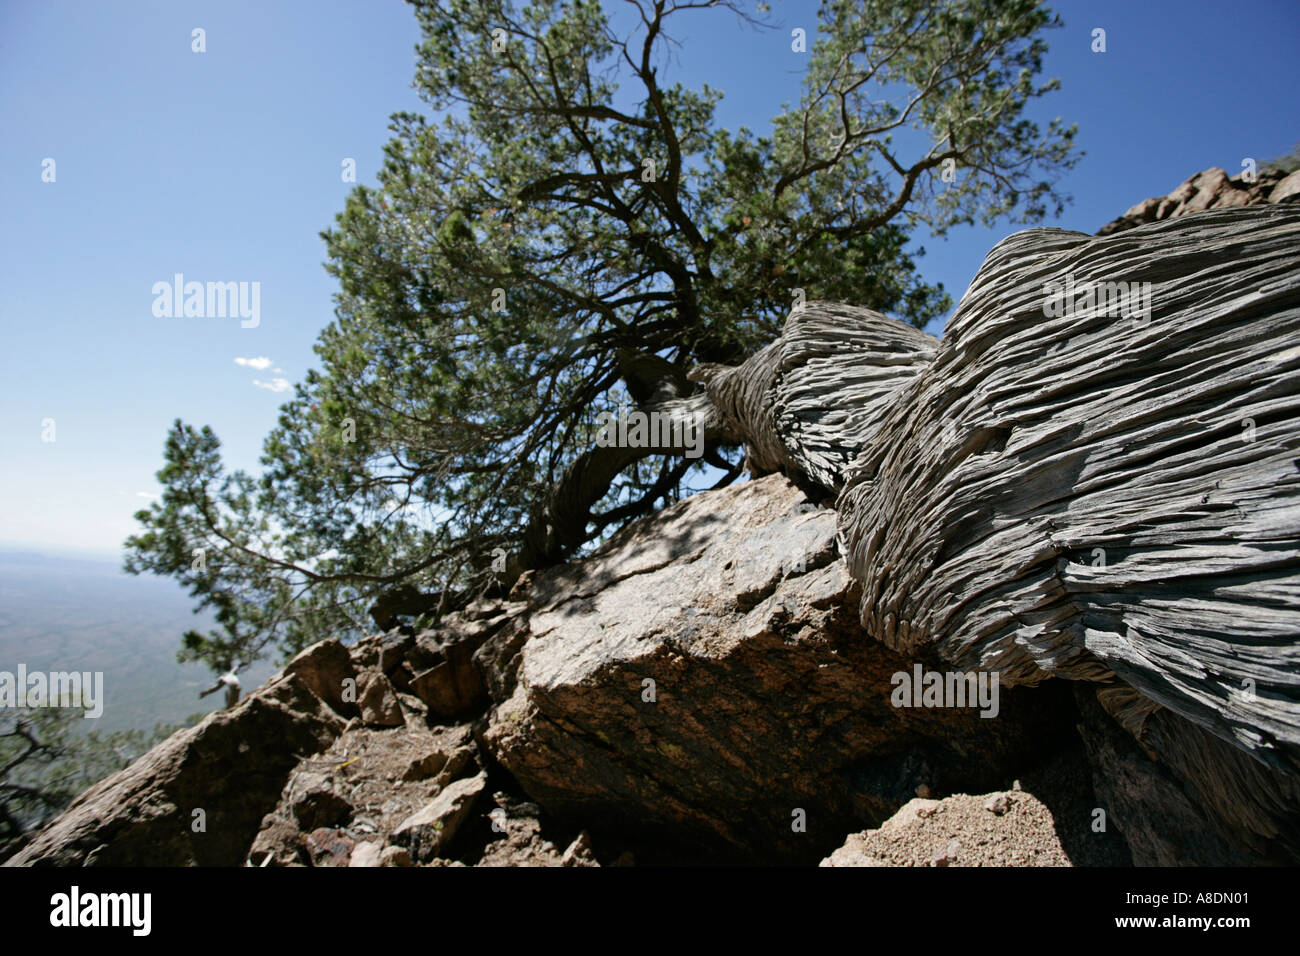 an old twisted and weathered pine tree atop a mountain in Arizona - Stock Image